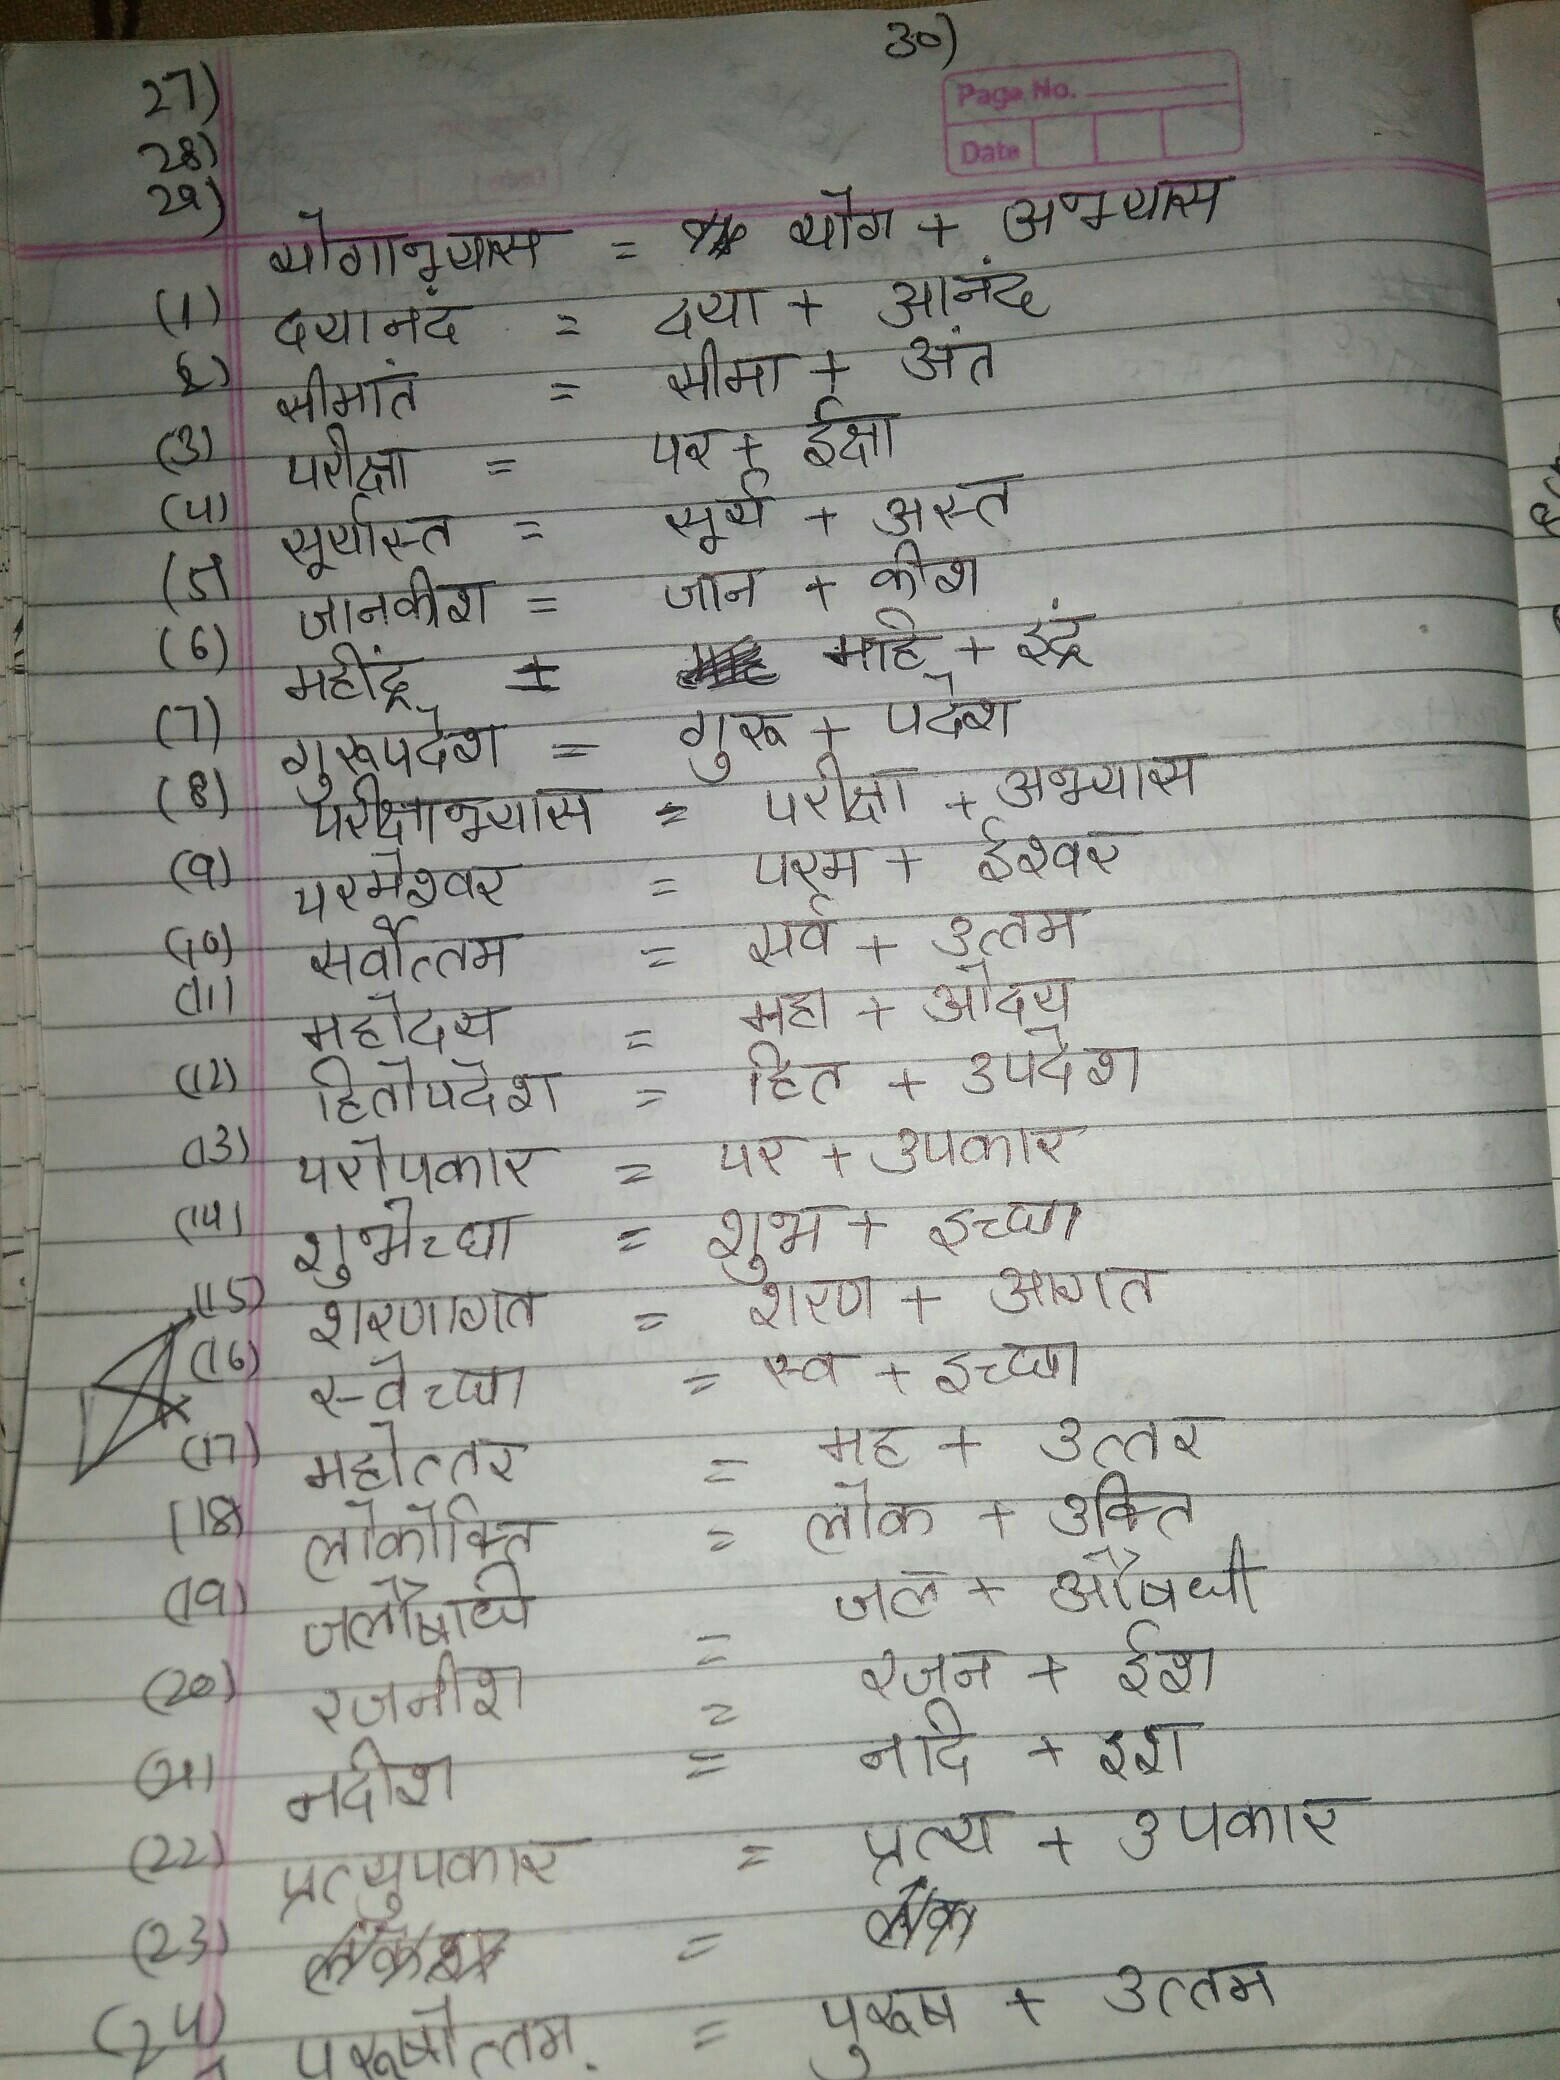 Swar Sandhi Ndhi Viched Hindi Grammar Worksheet